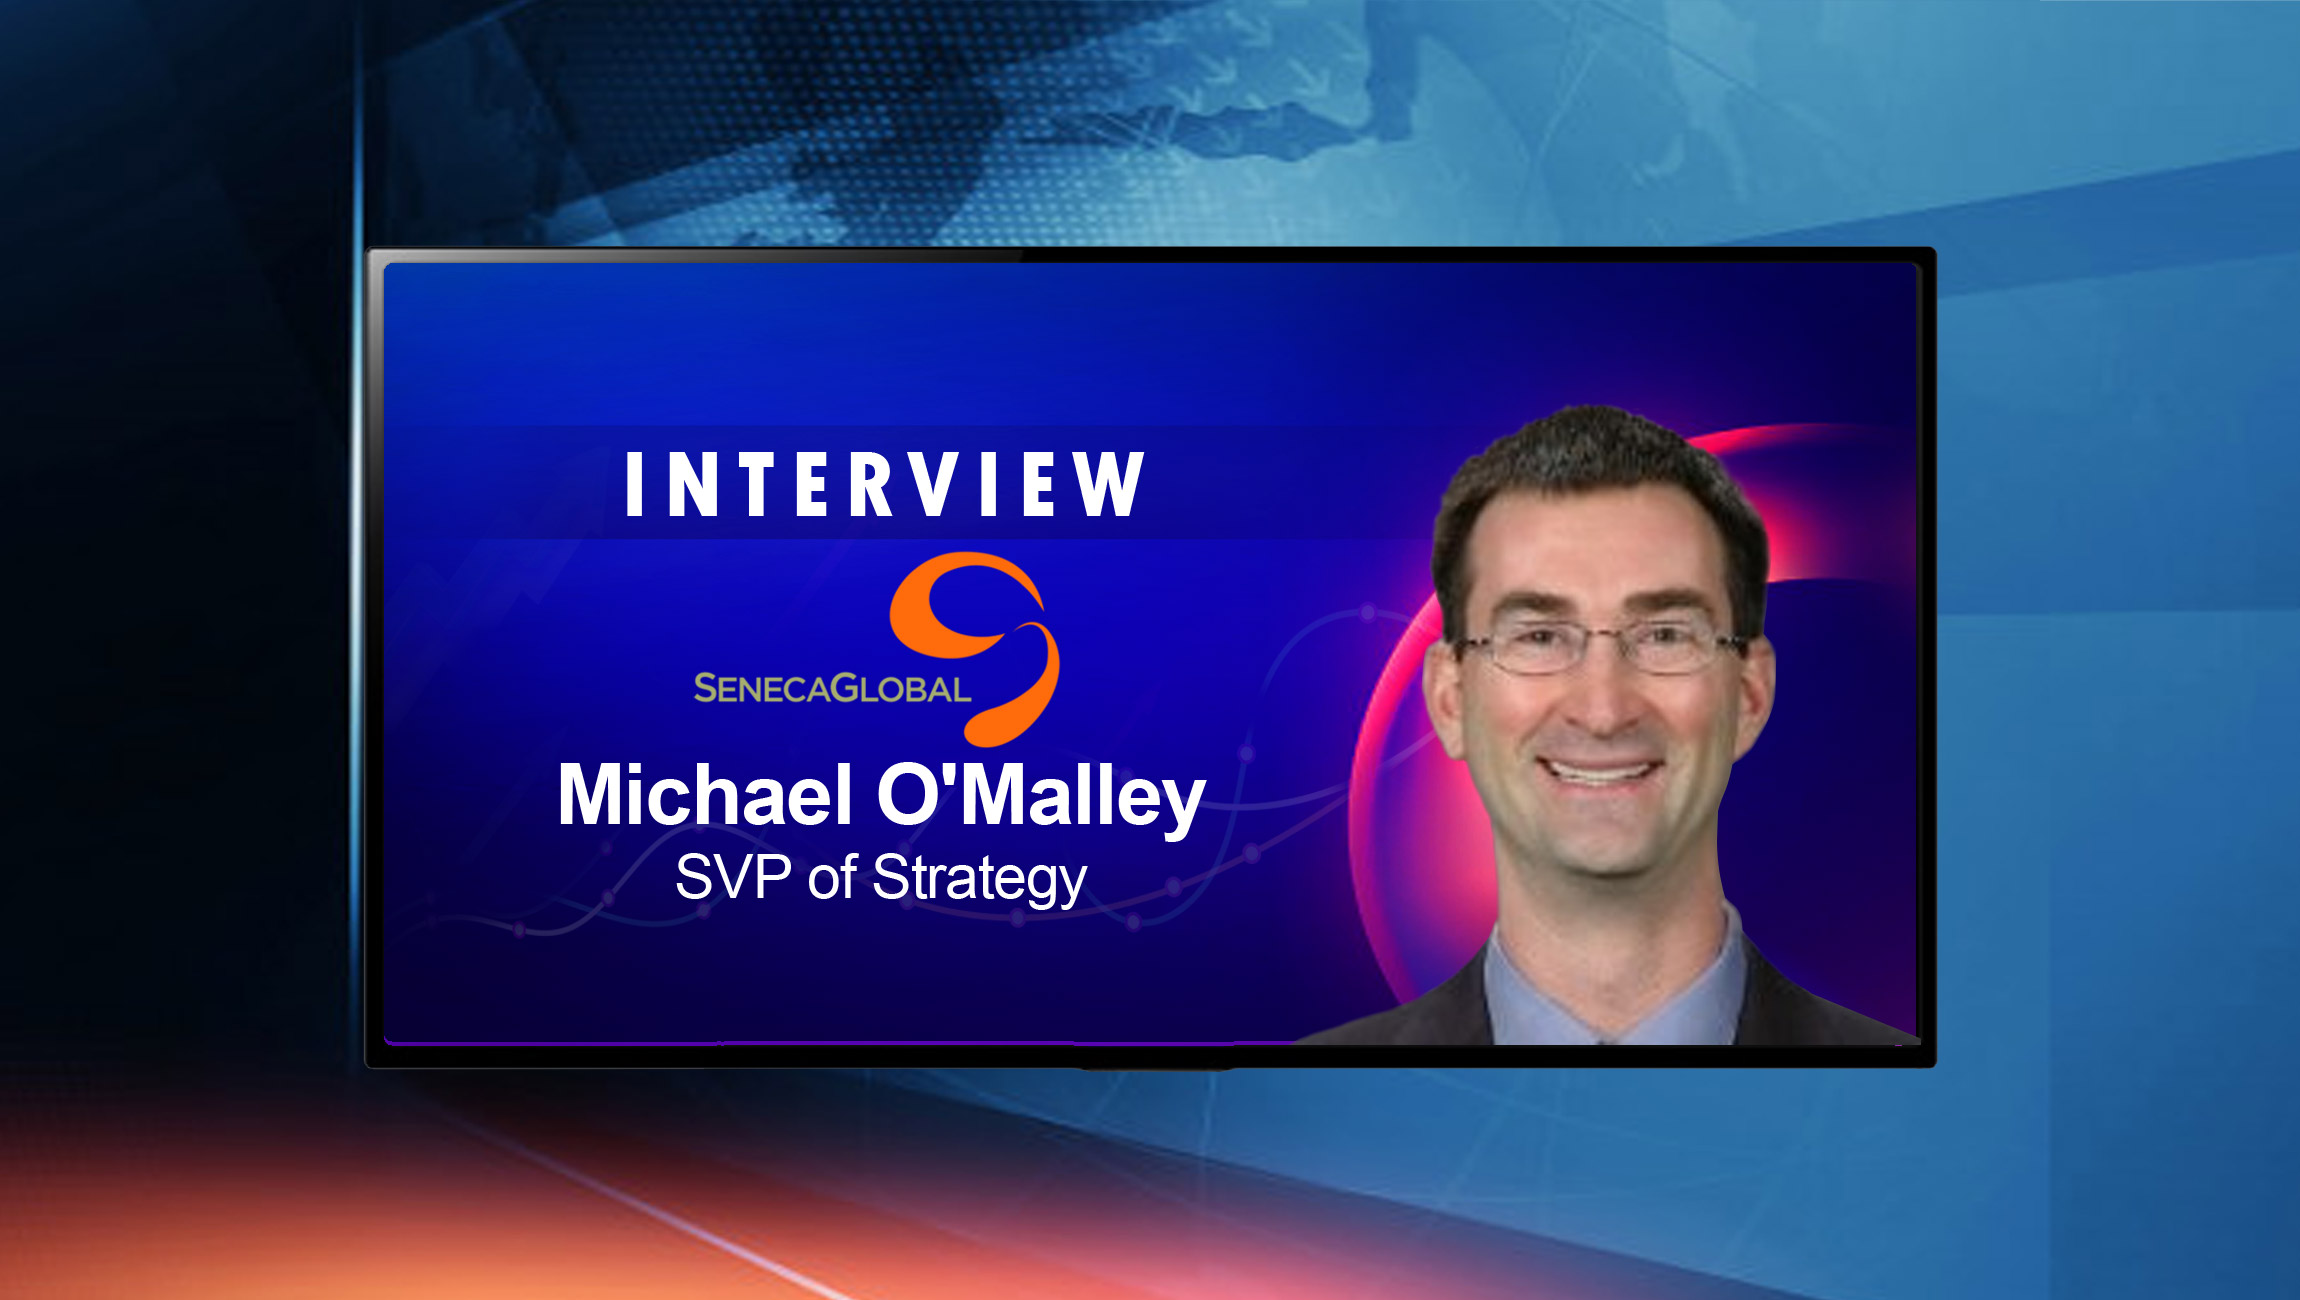 SalesTechStar Interview with Michael O'Malley, SVP of Strategy at SenecaGlobal